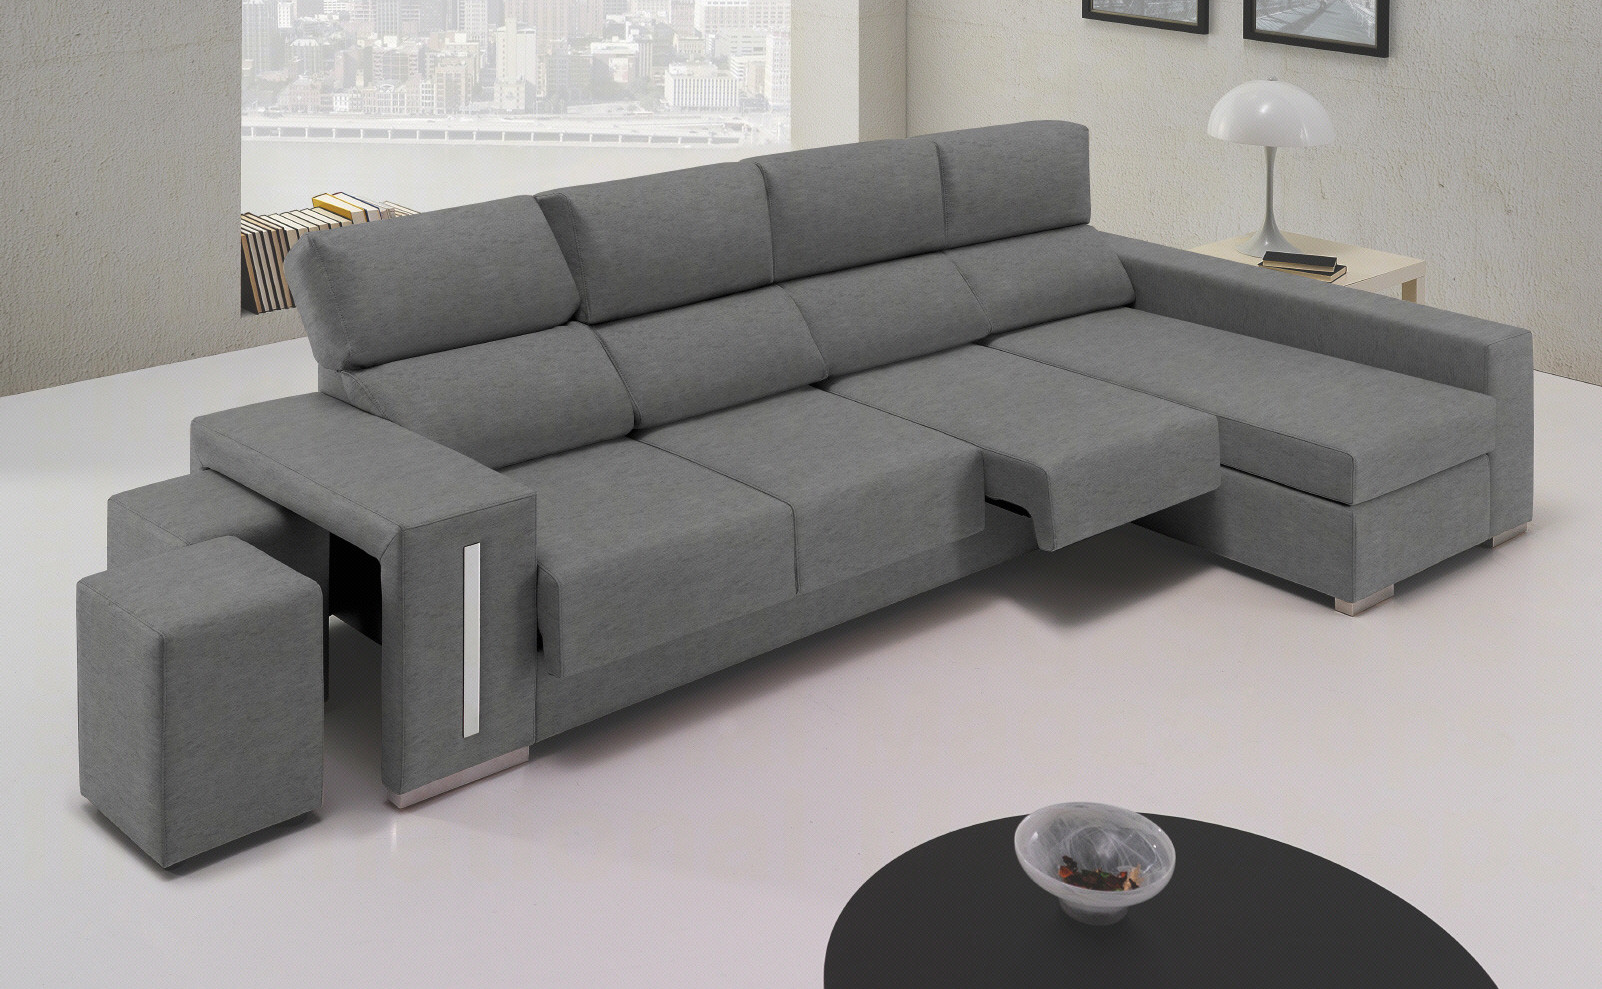 Sofas De 4 Plazas Brillante sofás En 3 Plazas Chaise Longue Derecha Visto De Frente Of 48  Brillante sofas De 4 Plazas